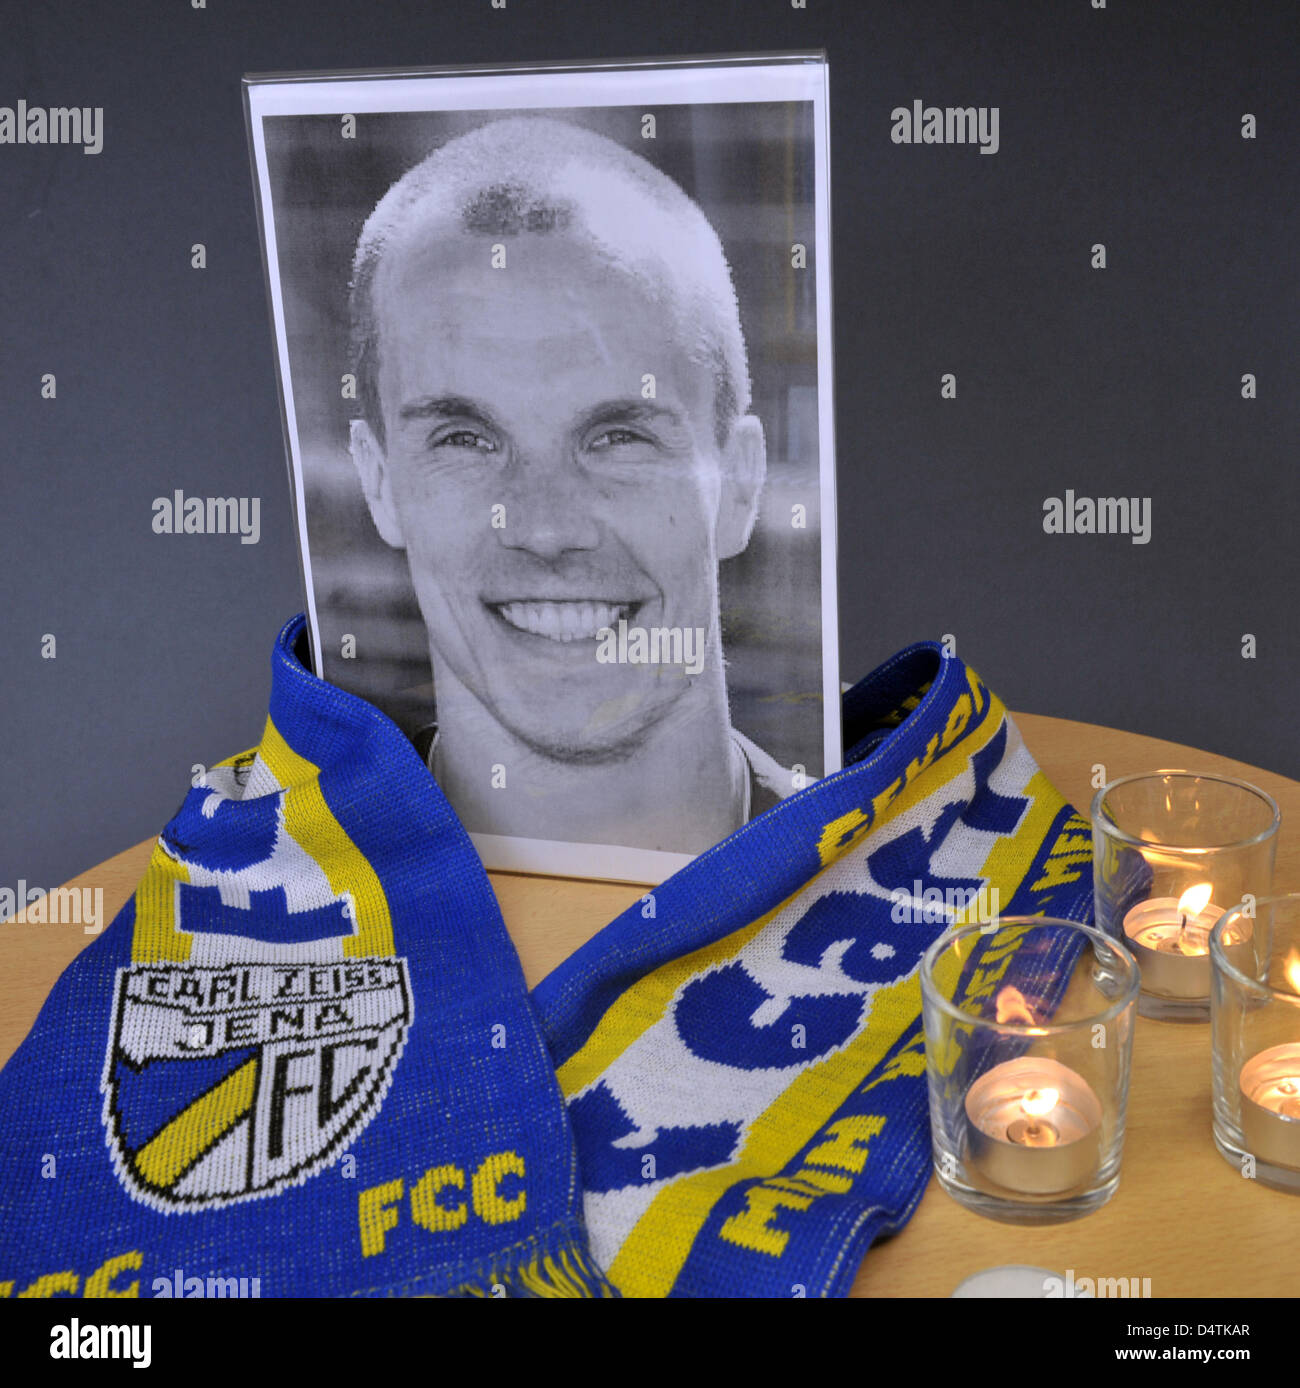 A photography, a fan scarf and candles commemorate Germany